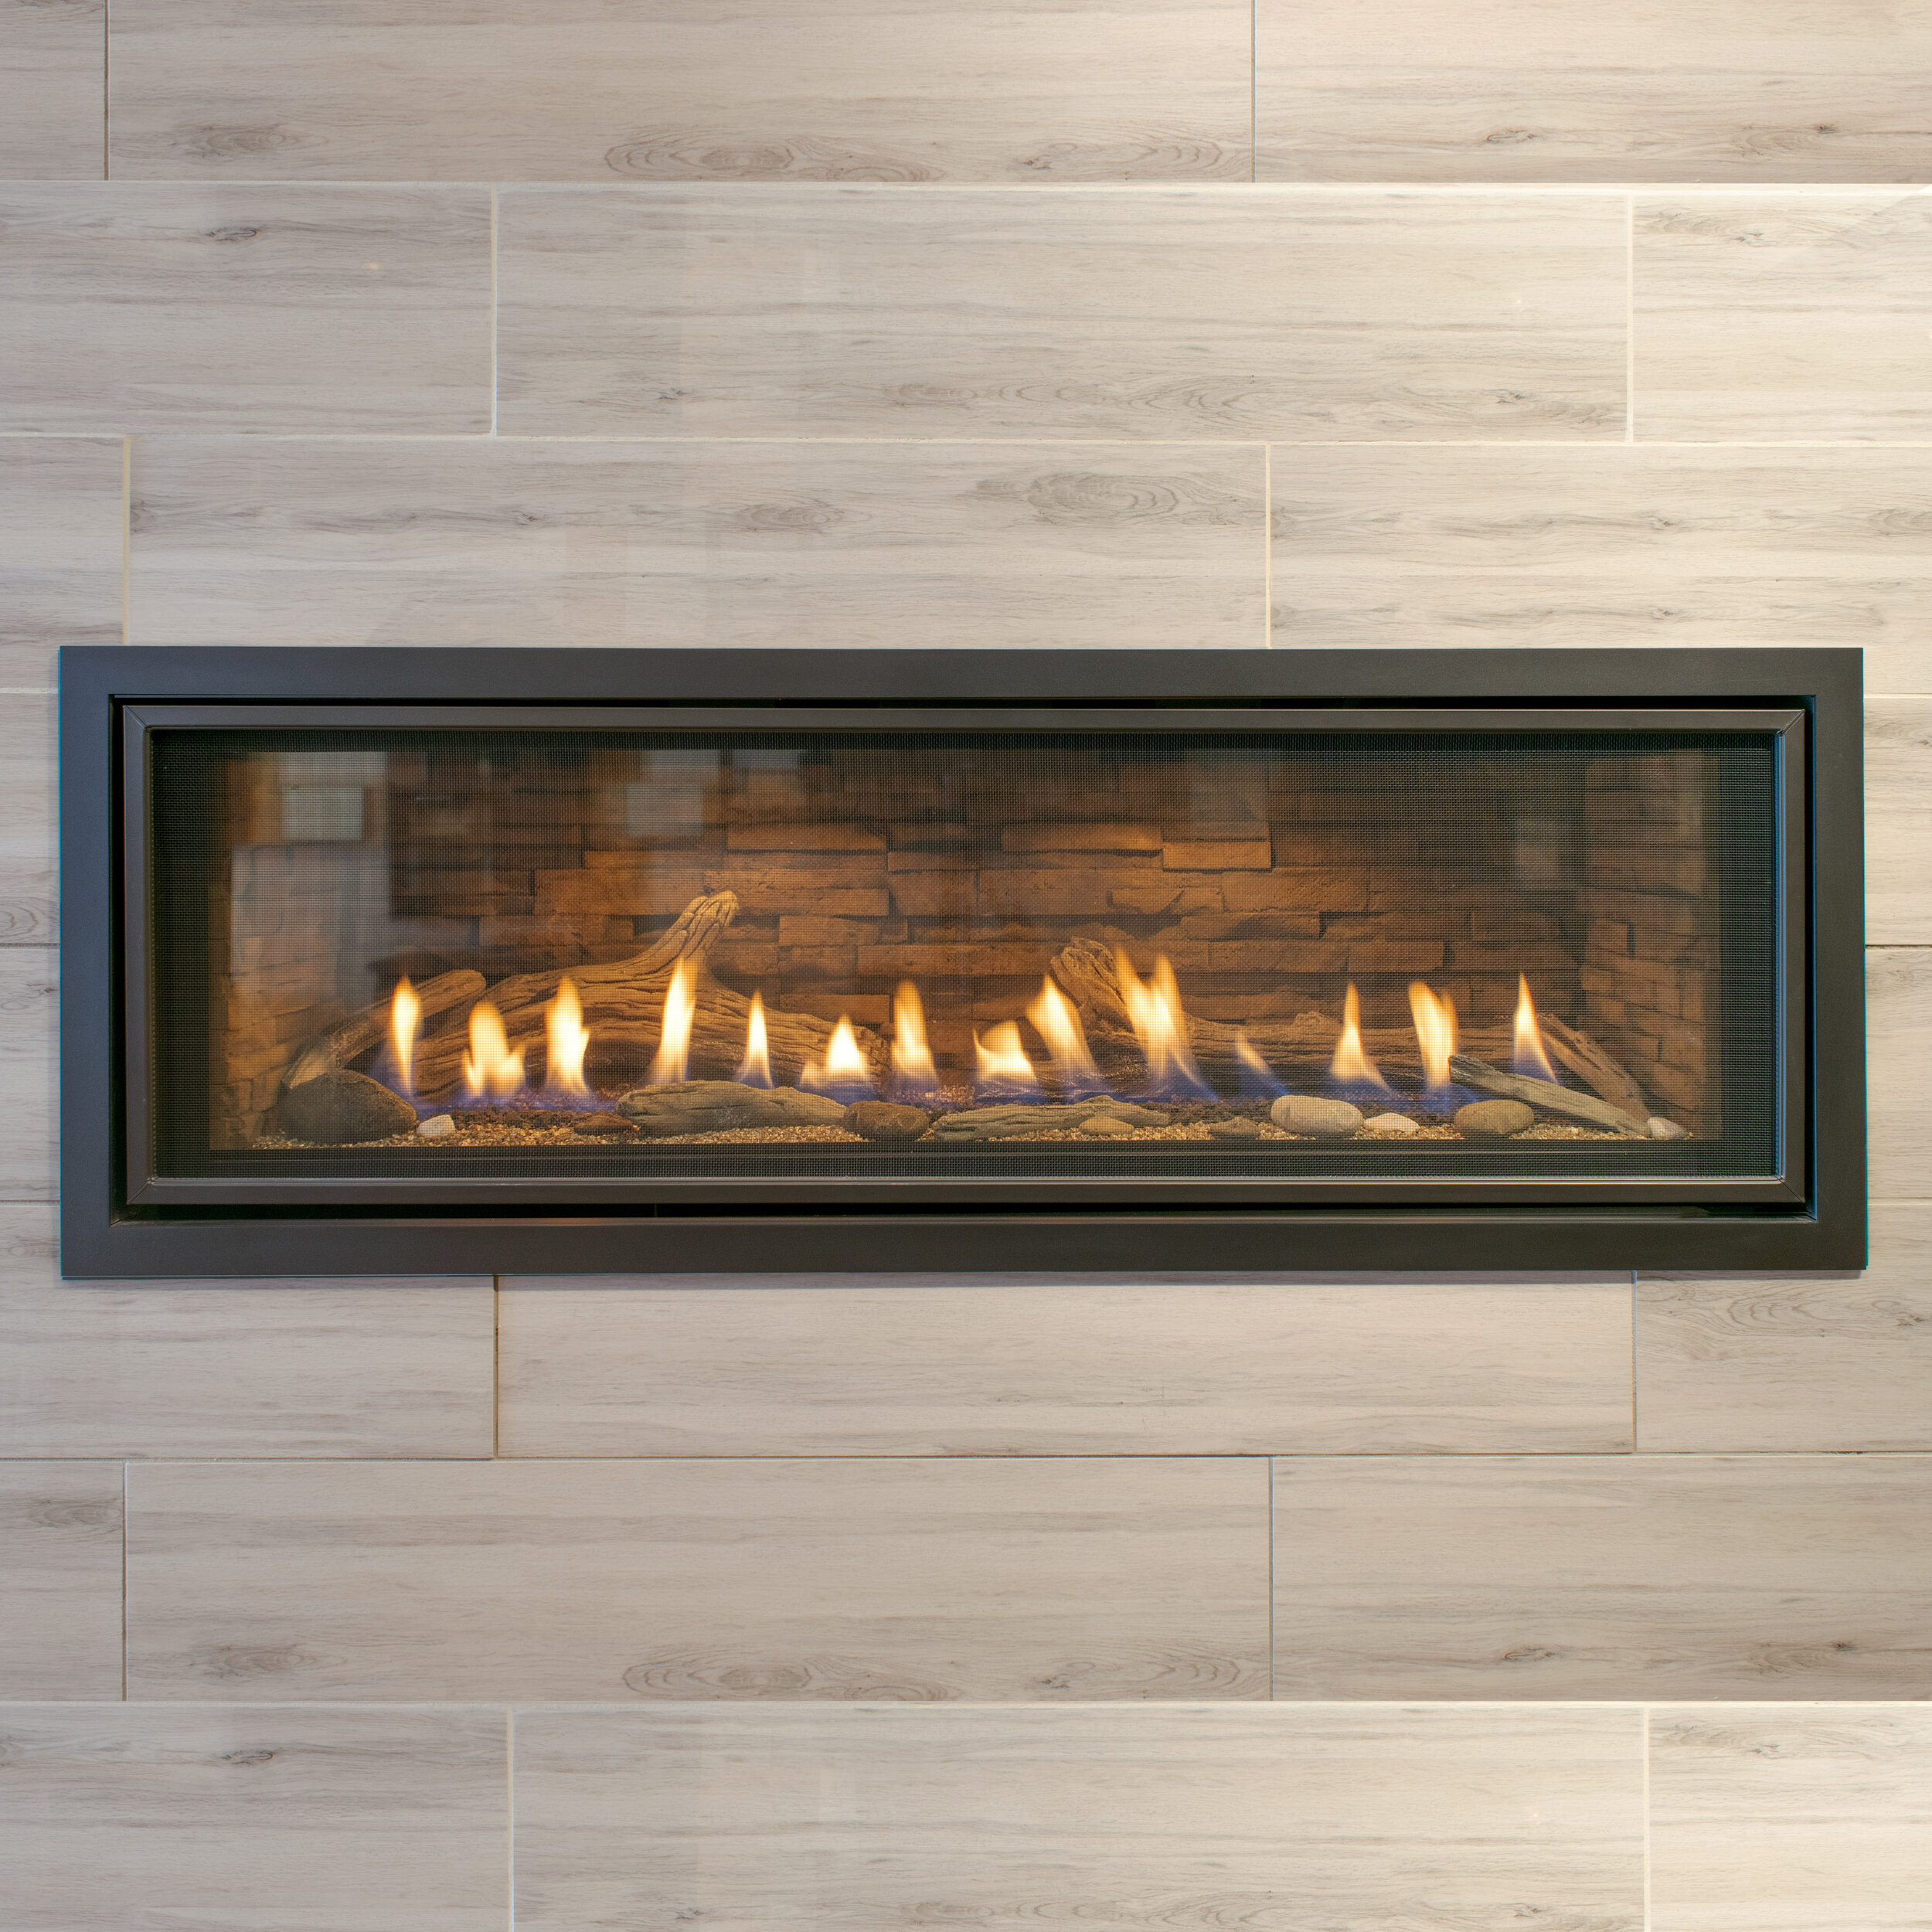 Kozy Heat Callaway 50 - ‧ Direct Vent Gas Fireplace - 35,500 BTU‧ Ledgerstone Firebox Panels‧ I-Piece Rectangle Surround‧ Beach Accent Kit‧ Accent Lighting‧ Proflame2 Full Function Remote Control‧ Fan‧ Trendy Linear Design